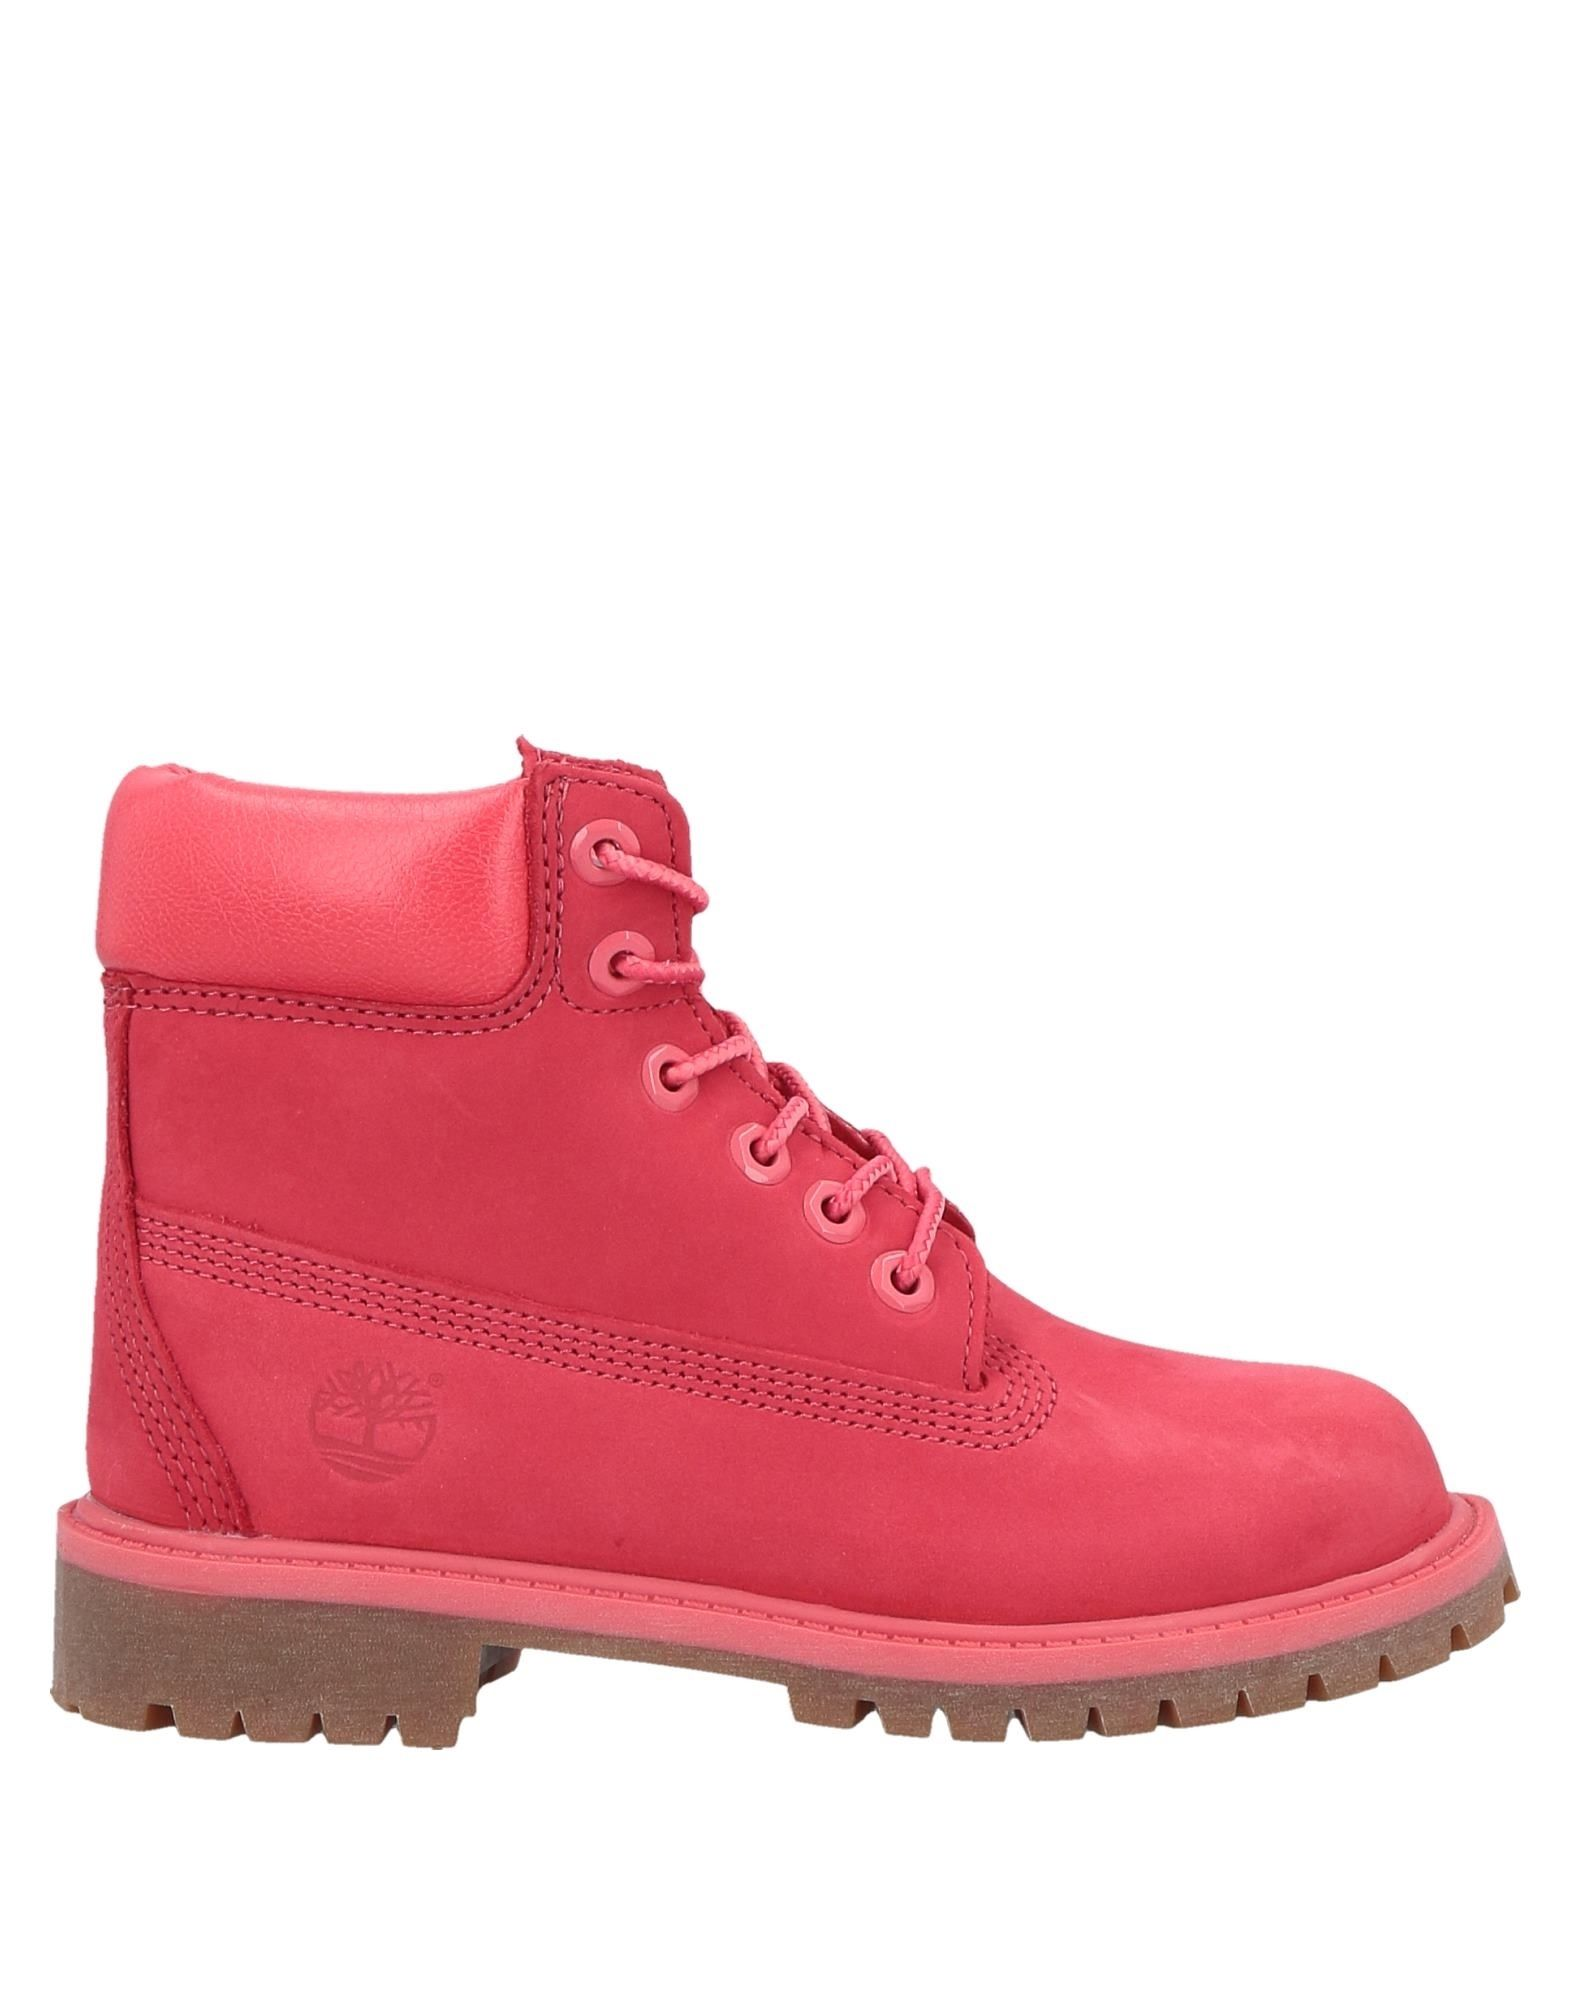 Timberland Boots Ankle boots